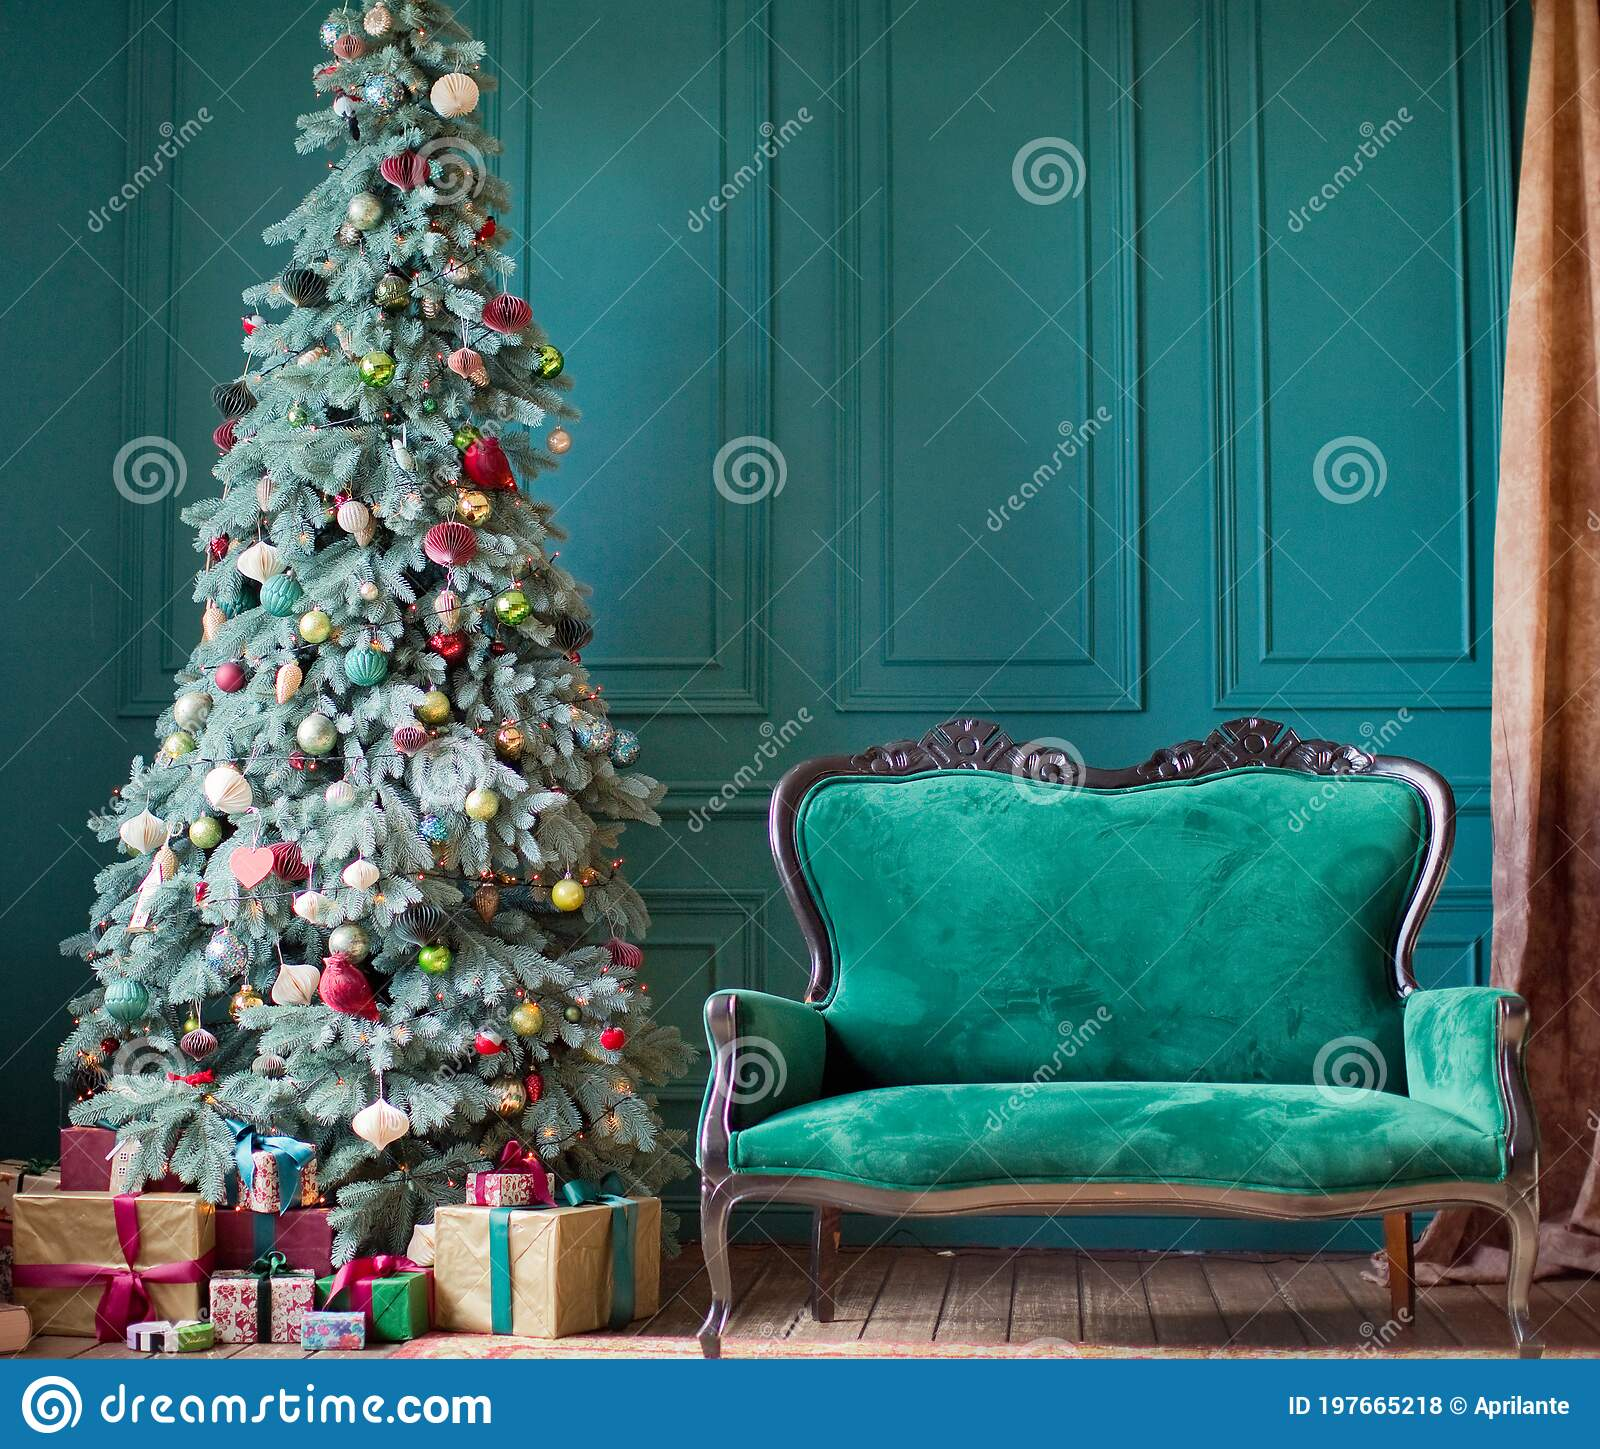 Green Christmas Interior With Decorations Stock Photo Image Of Natural Happy 197665218